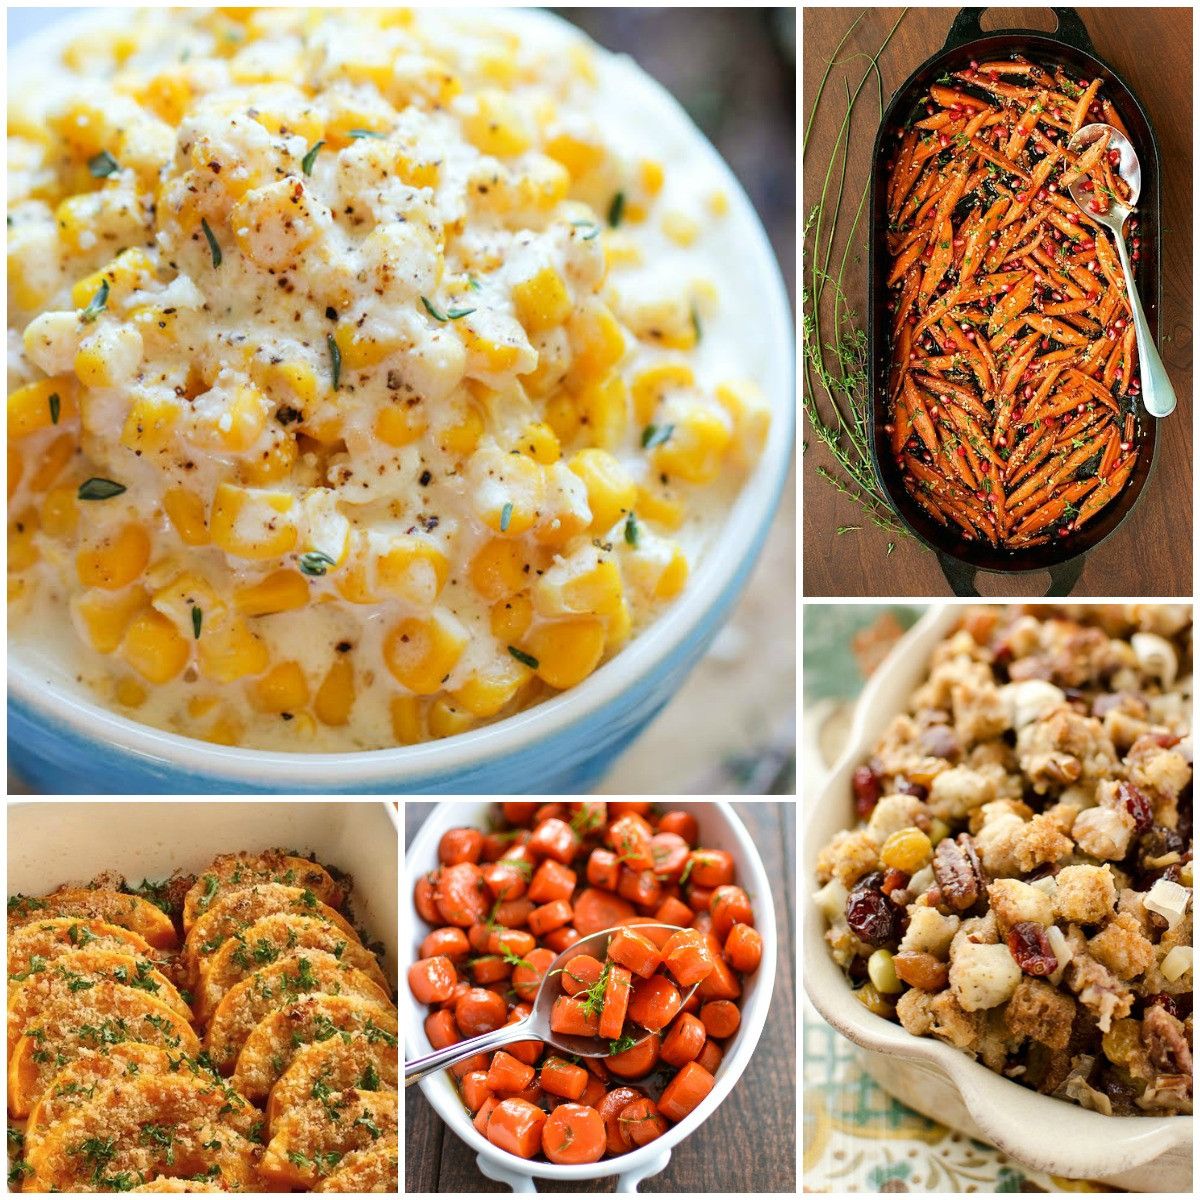 Christmas Dinner Side Dishes Food Network  25 Most Pinned Side Dish Recipes for Thanksgiving and